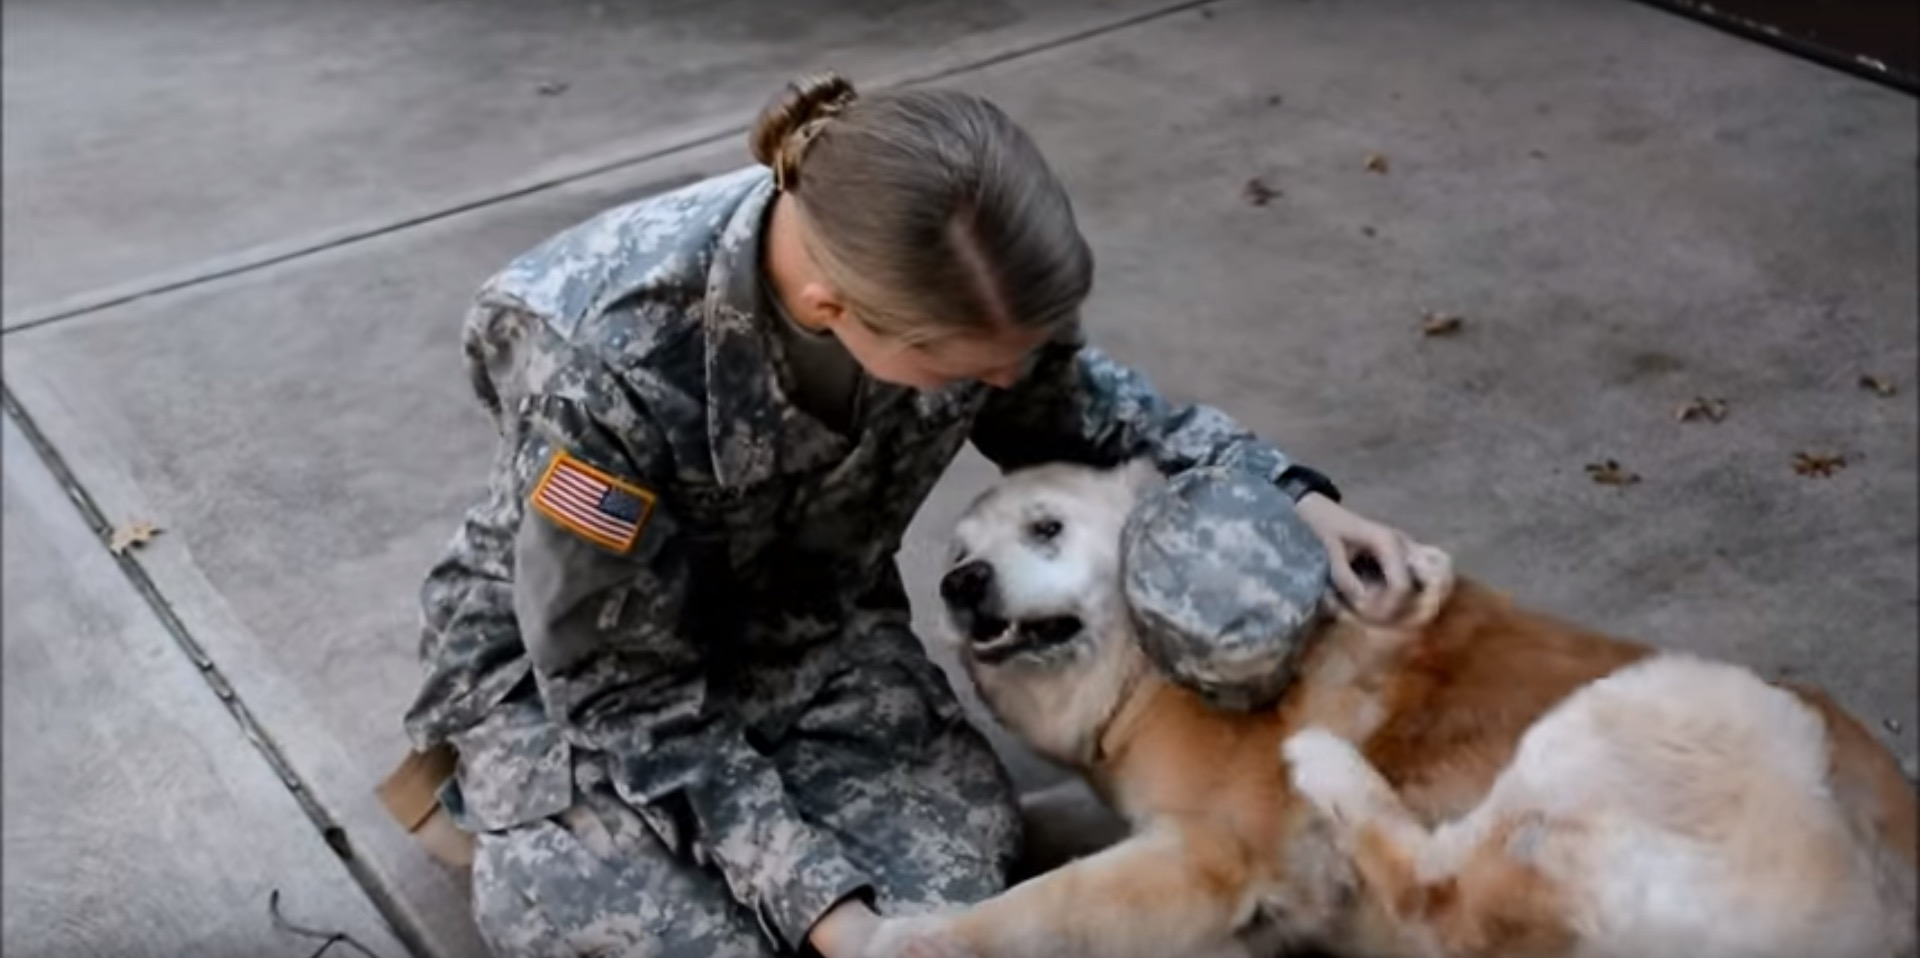 Watch The Sweet Moment A Soldier Is Reunited With Her Dog